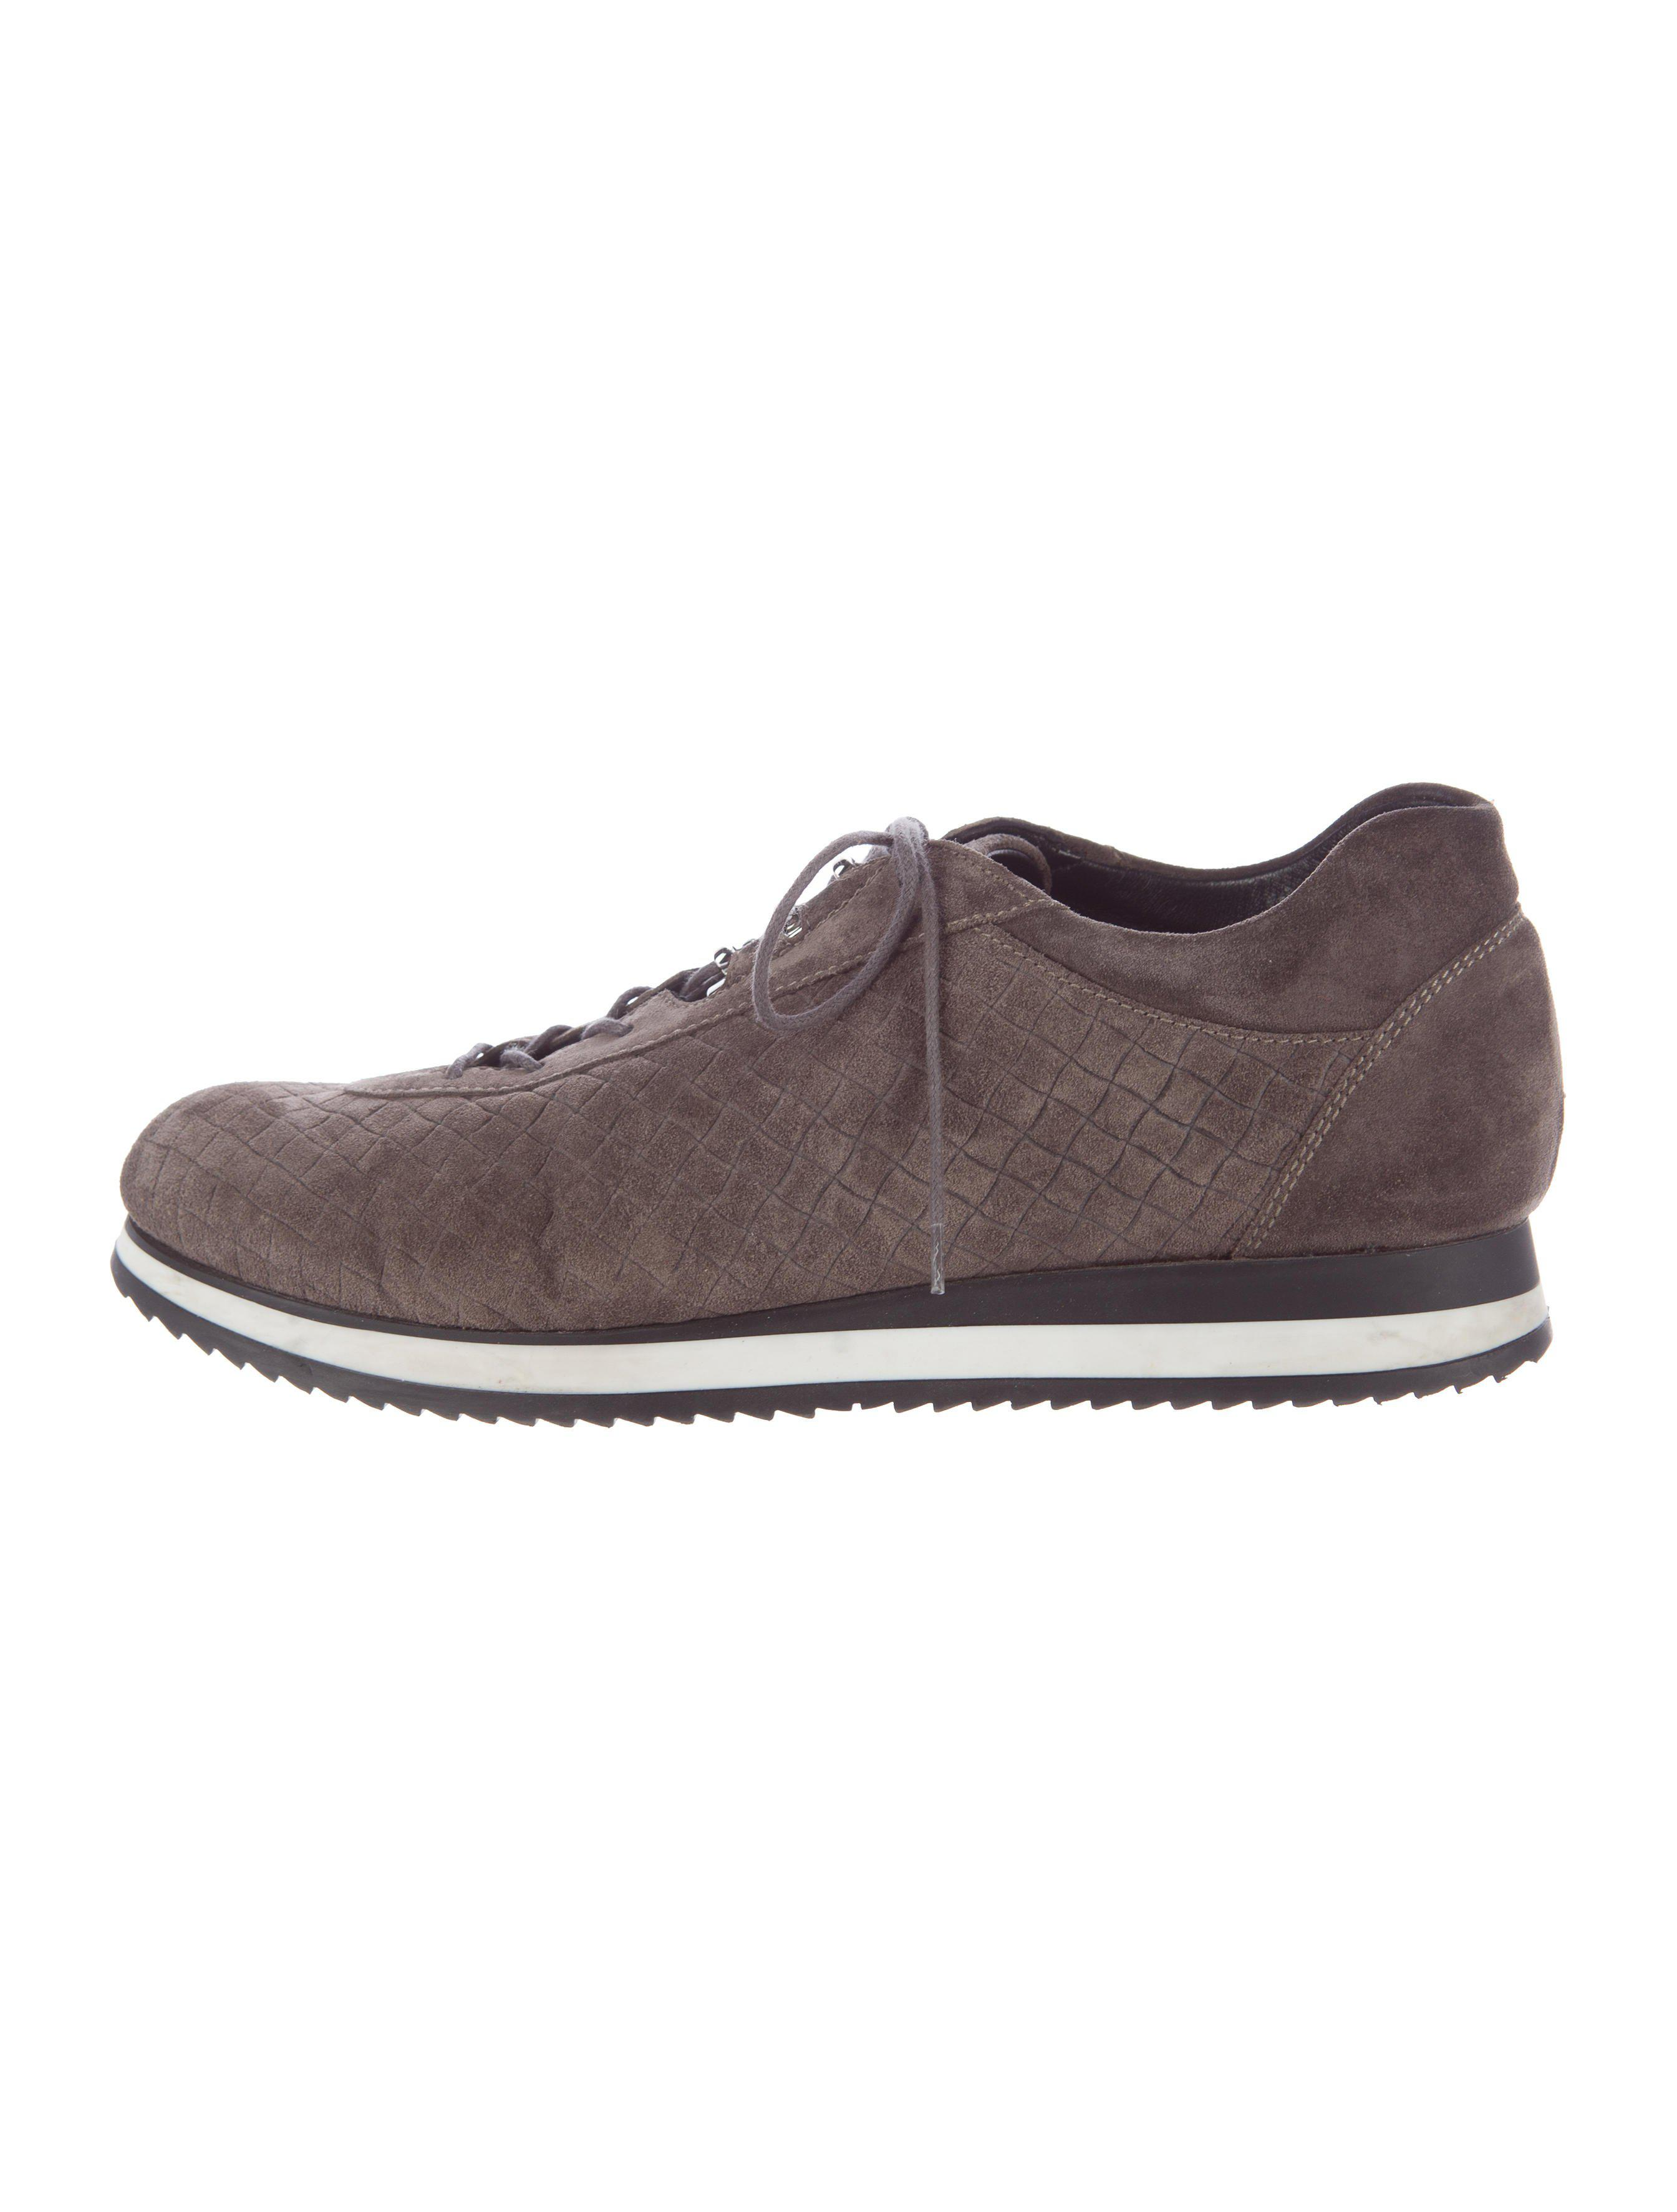 manchester great sale cheap online Stuart Weitzman Suede Low-Top Sneakers low price fee shipping cheap price discount 100% authentic discount hot sale cheap sale excellent oTtVZcyS